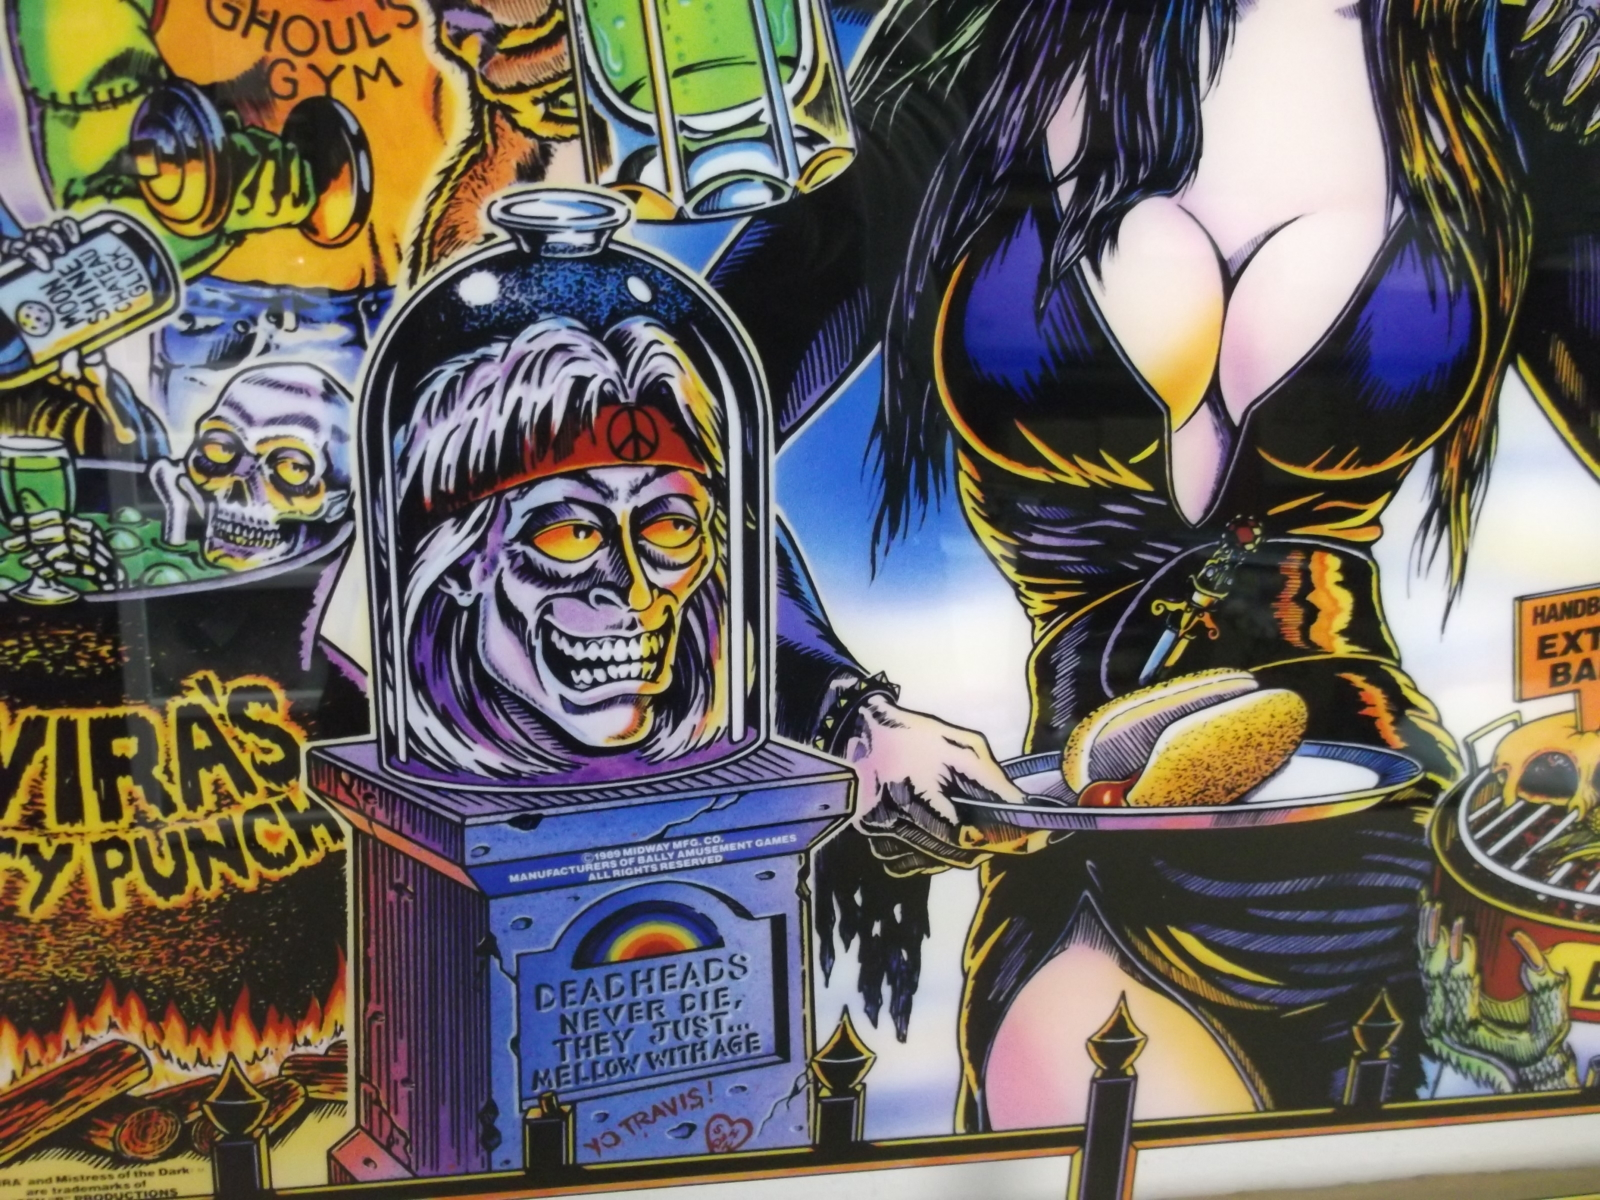 elvira and the party monsters 1989 bally backglass budget wire schematics for car wire schematics for car wire schematics for car wire schematics for car